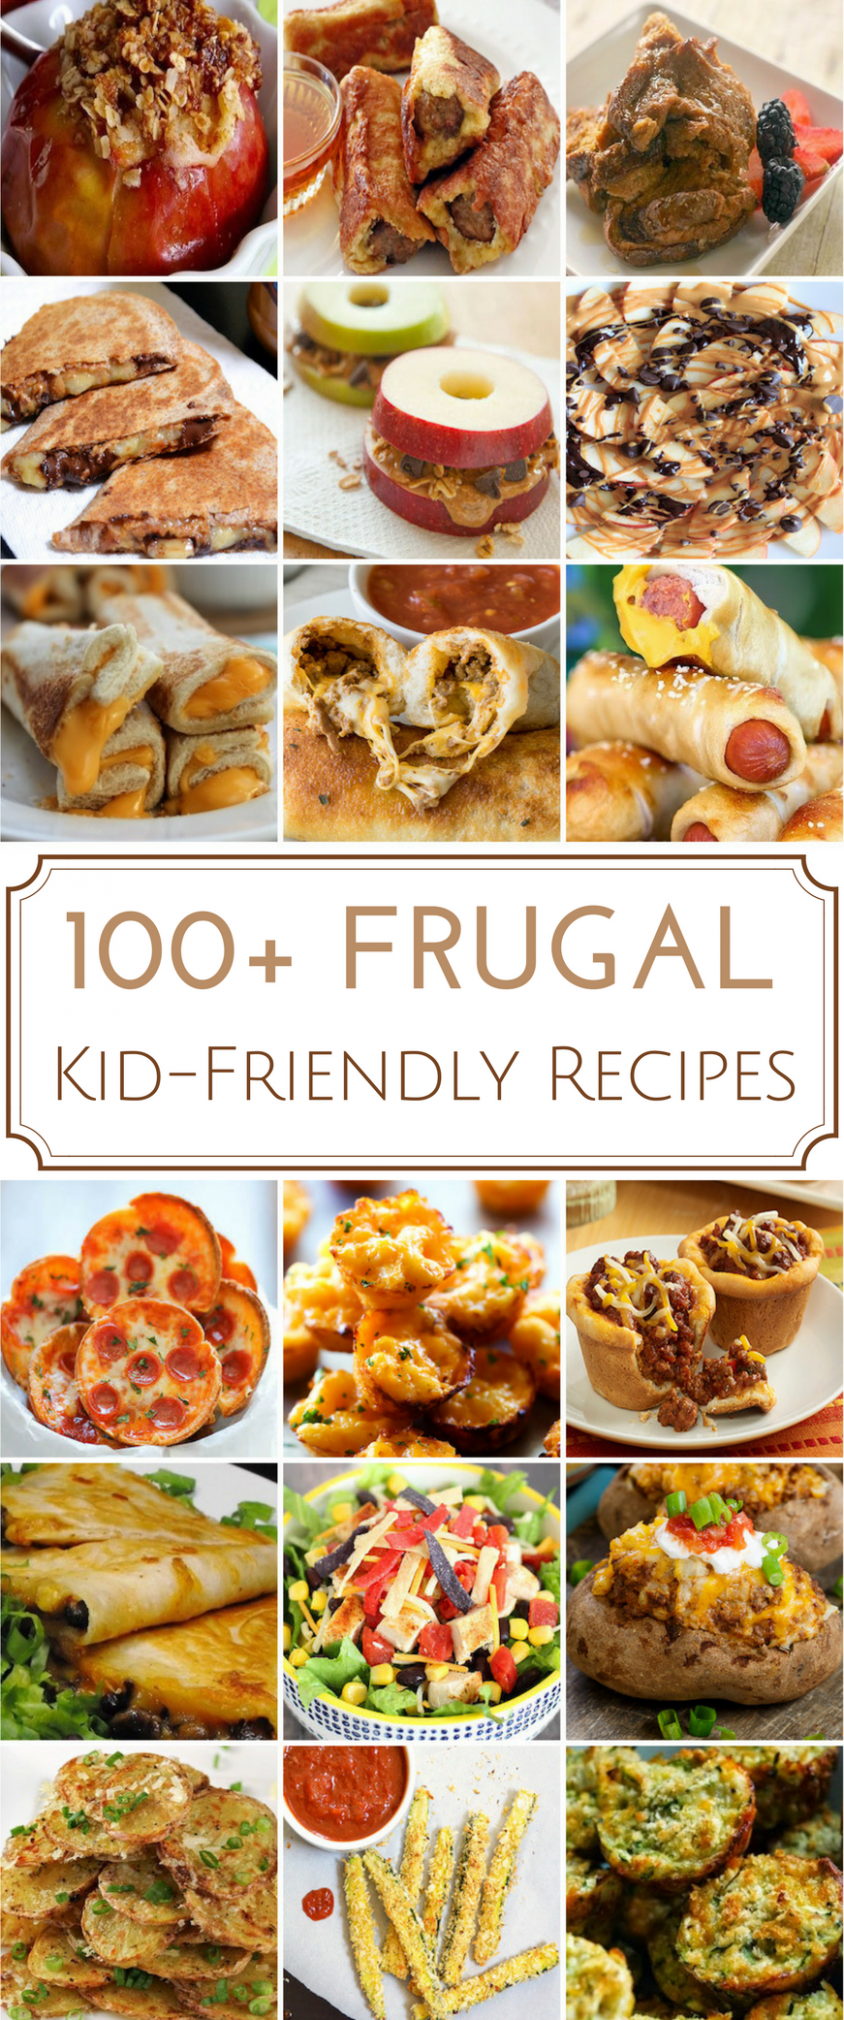 10 Frugal Kid-Friendly Recipes | Kid friendly meals, Picky eaters ..